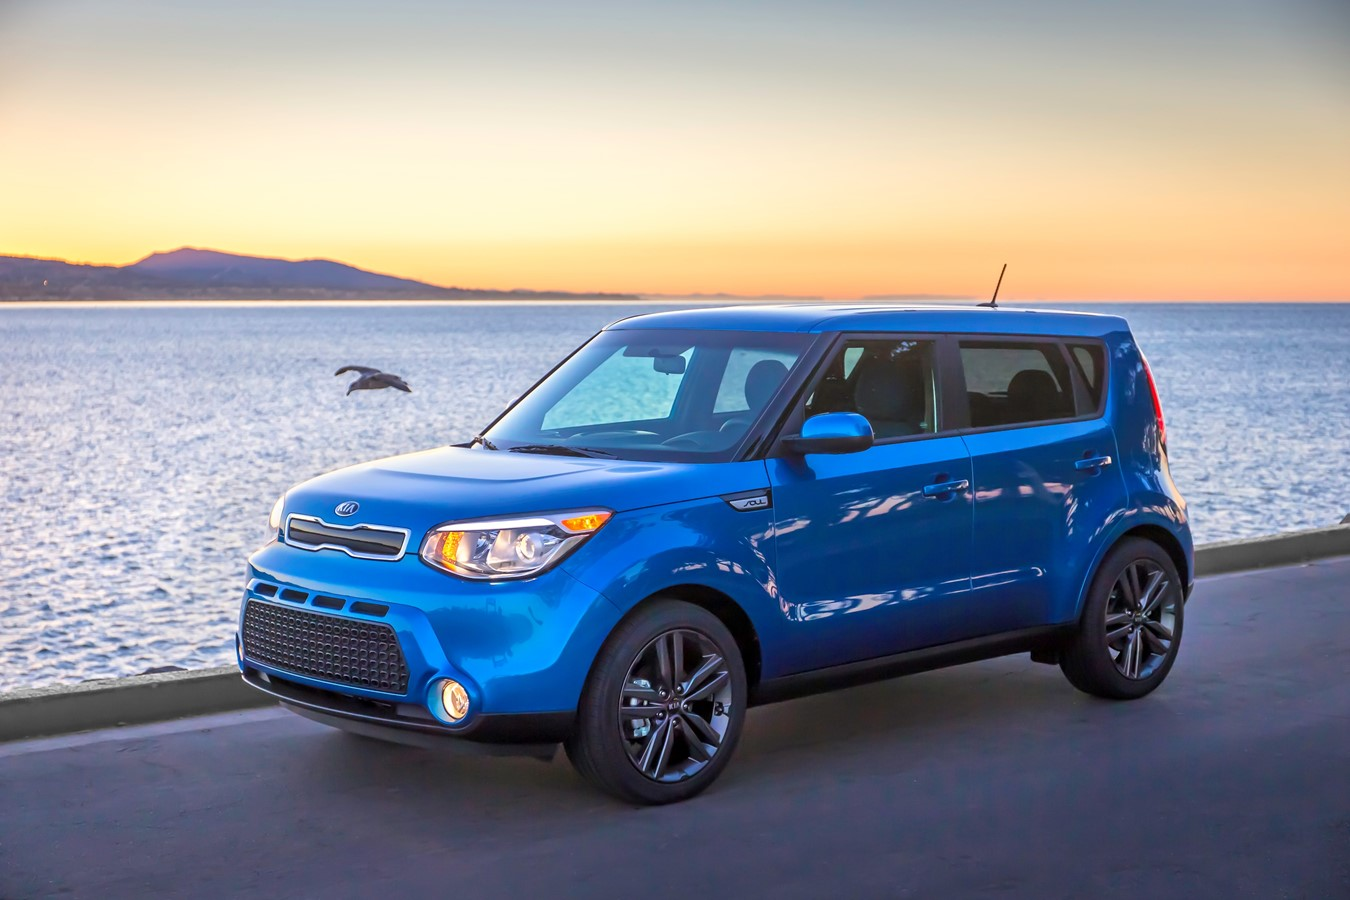 Design Of Kia Soul